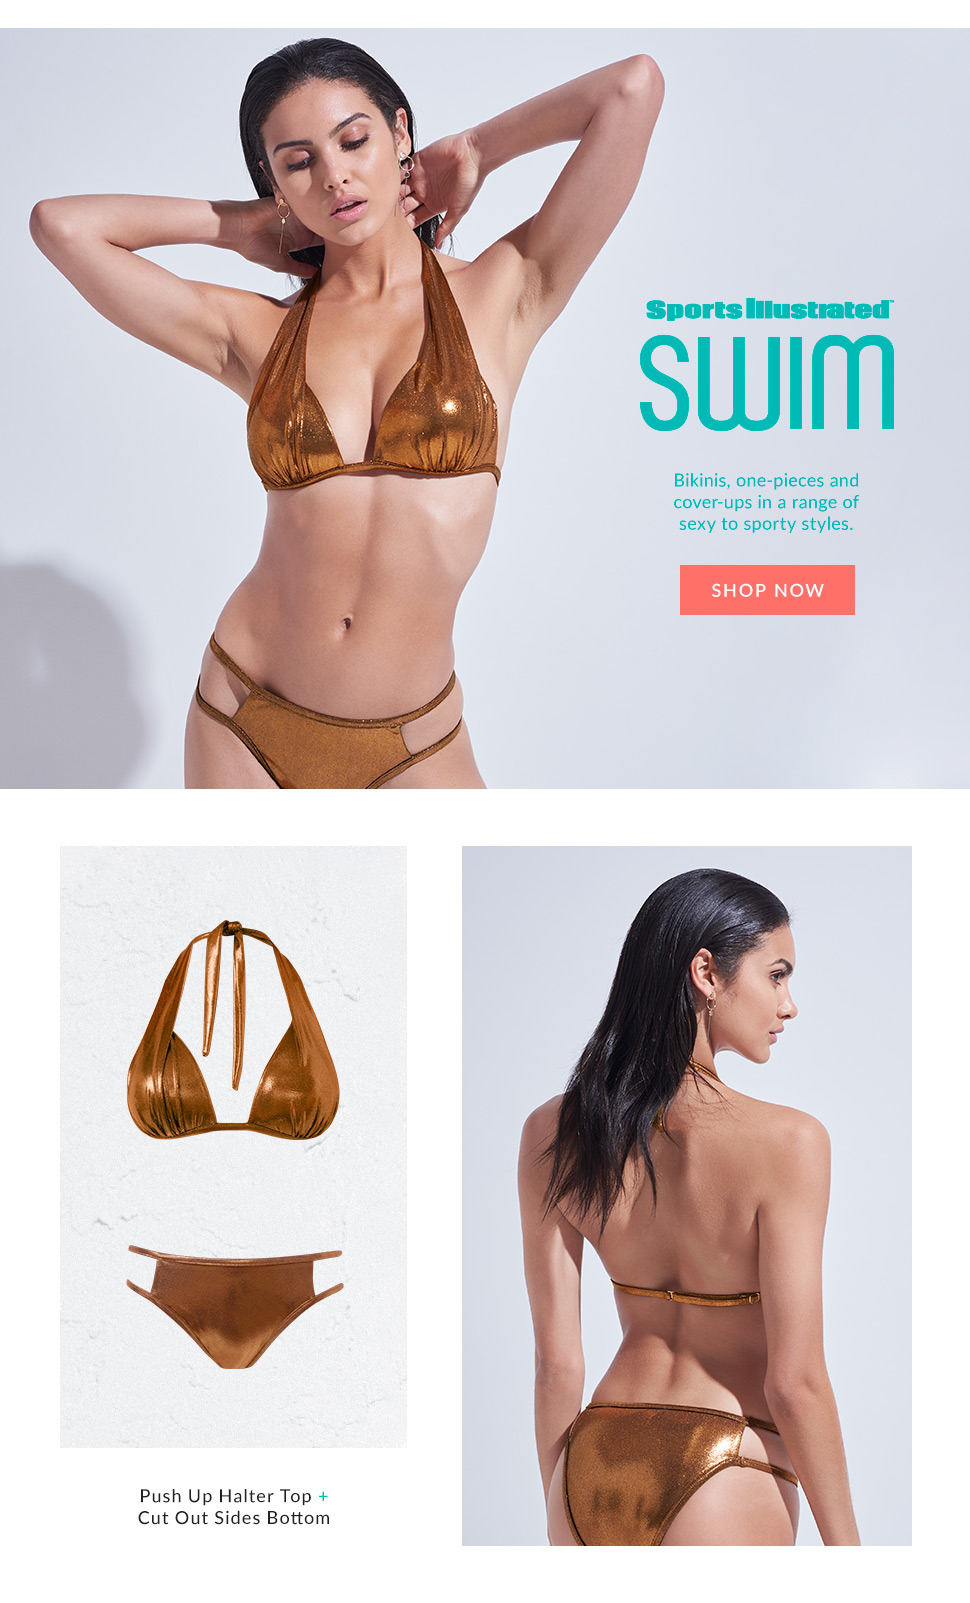 Our new Sports Illustrated swimwear collection.